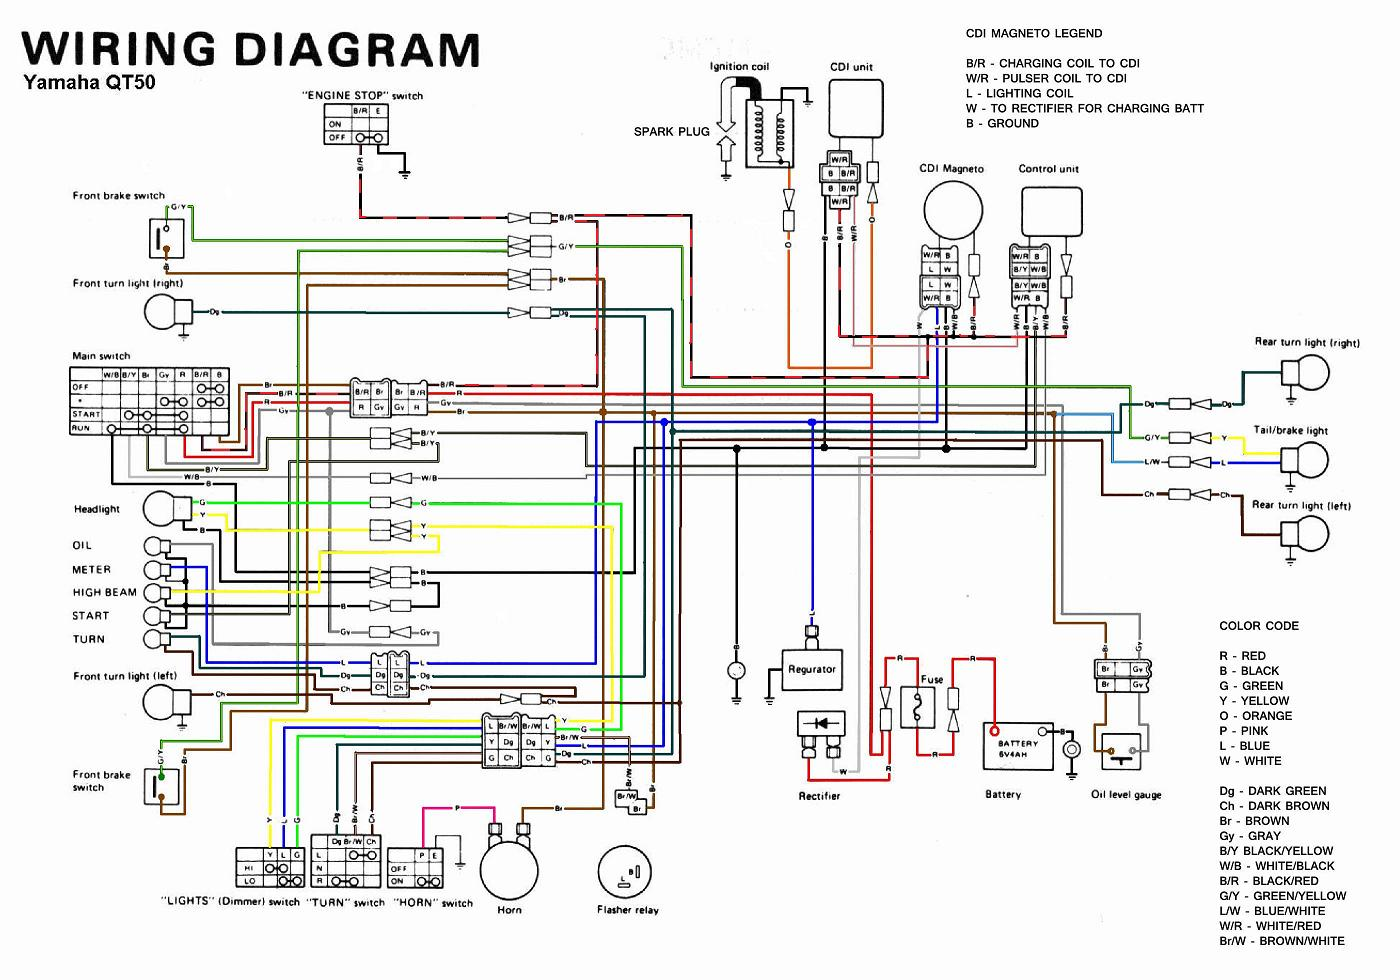 Yamaha QT50 Wiring Diagram?resized665%2C466 xs650 chopper wiring diagram efcaviation com sr400 wiring diagram at honlapkeszites.co